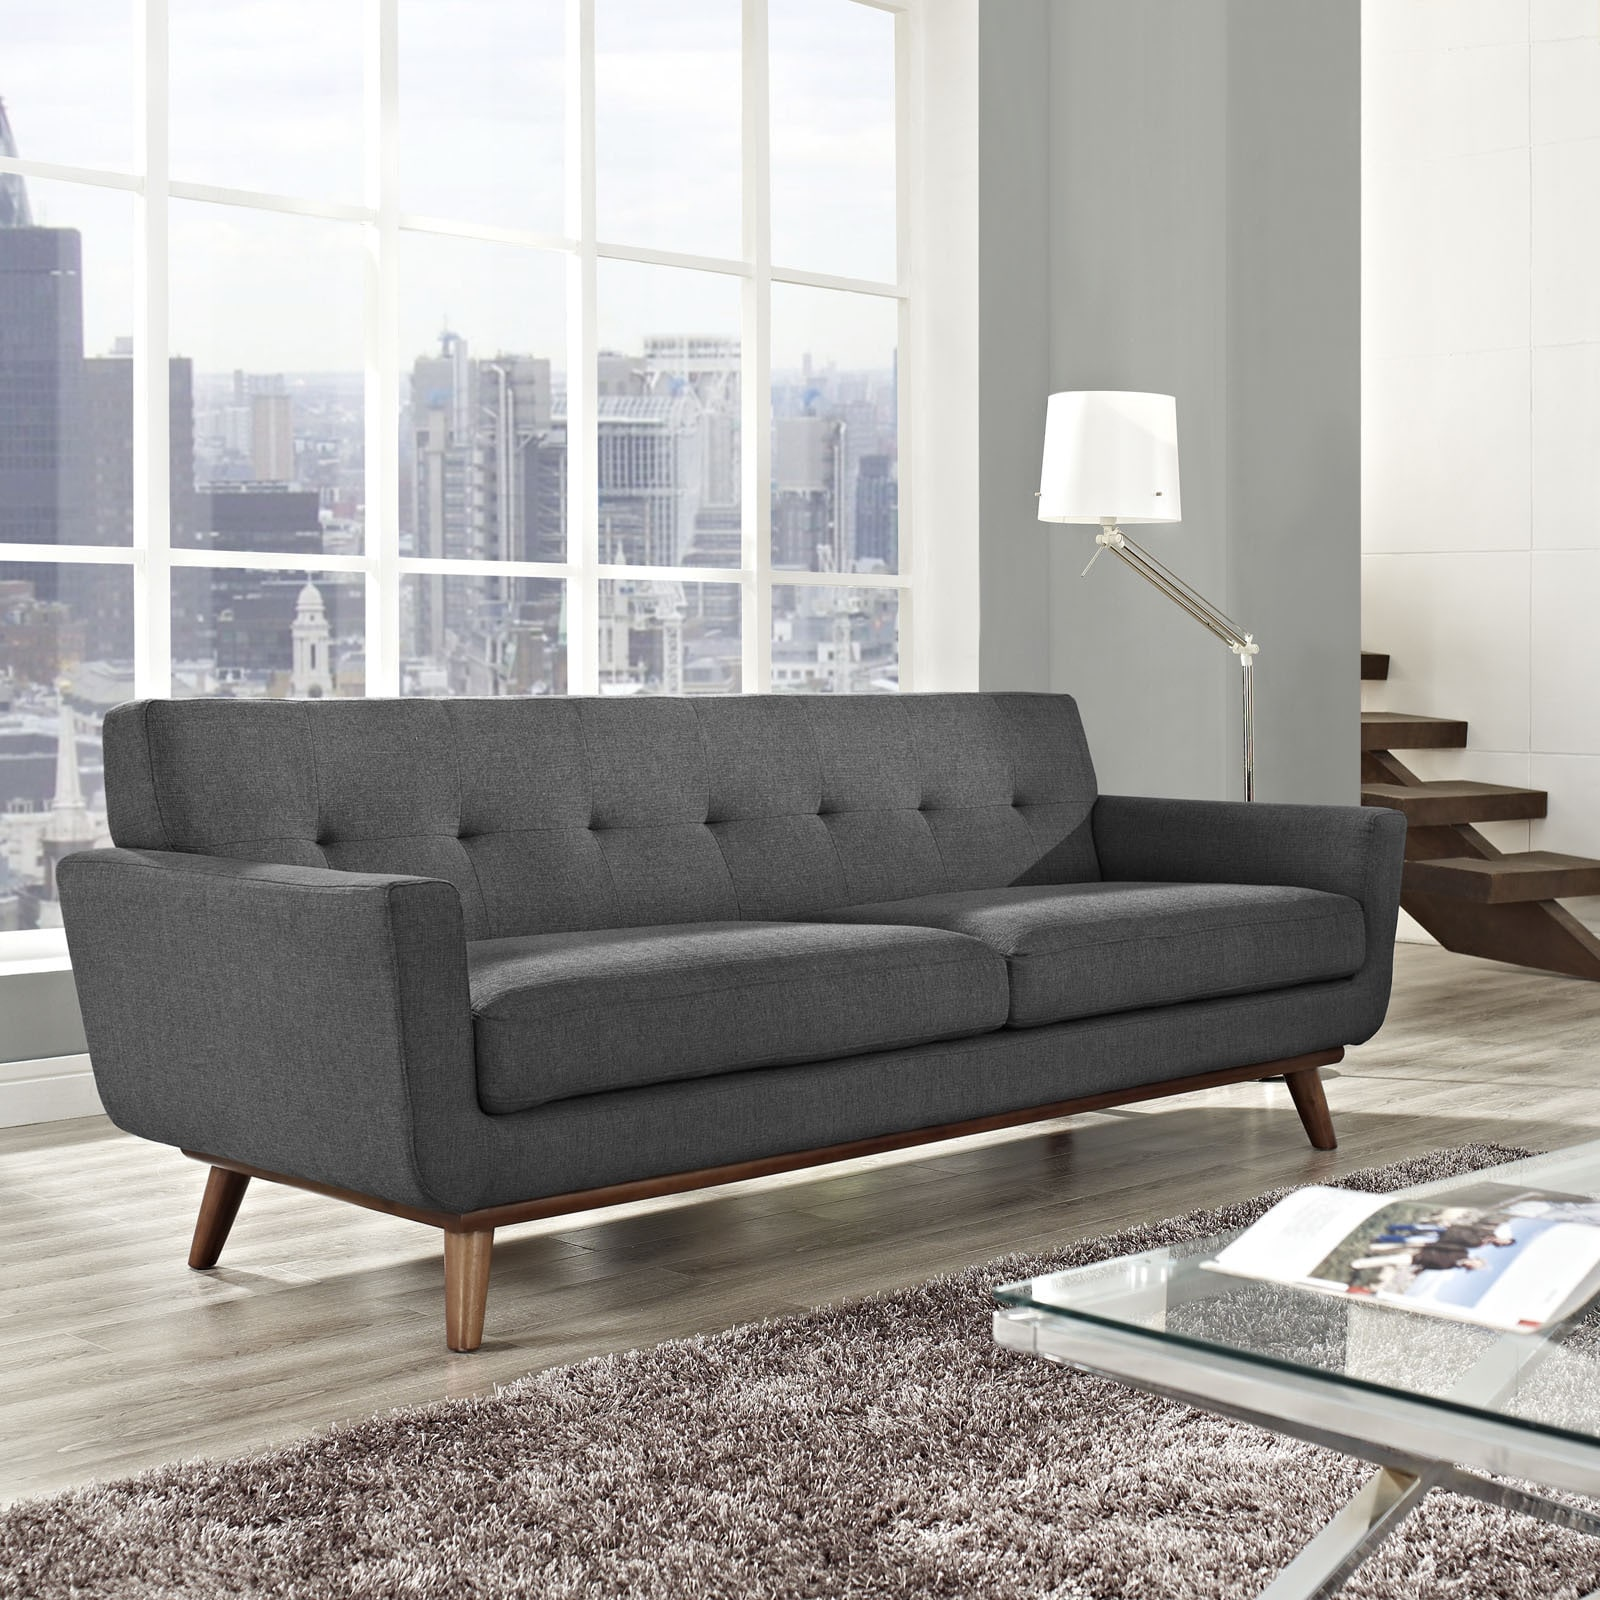 Terrific Buy Sofas Couches Online At Overstock Our Best Living Cjindustries Chair Design For Home Cjindustriesco